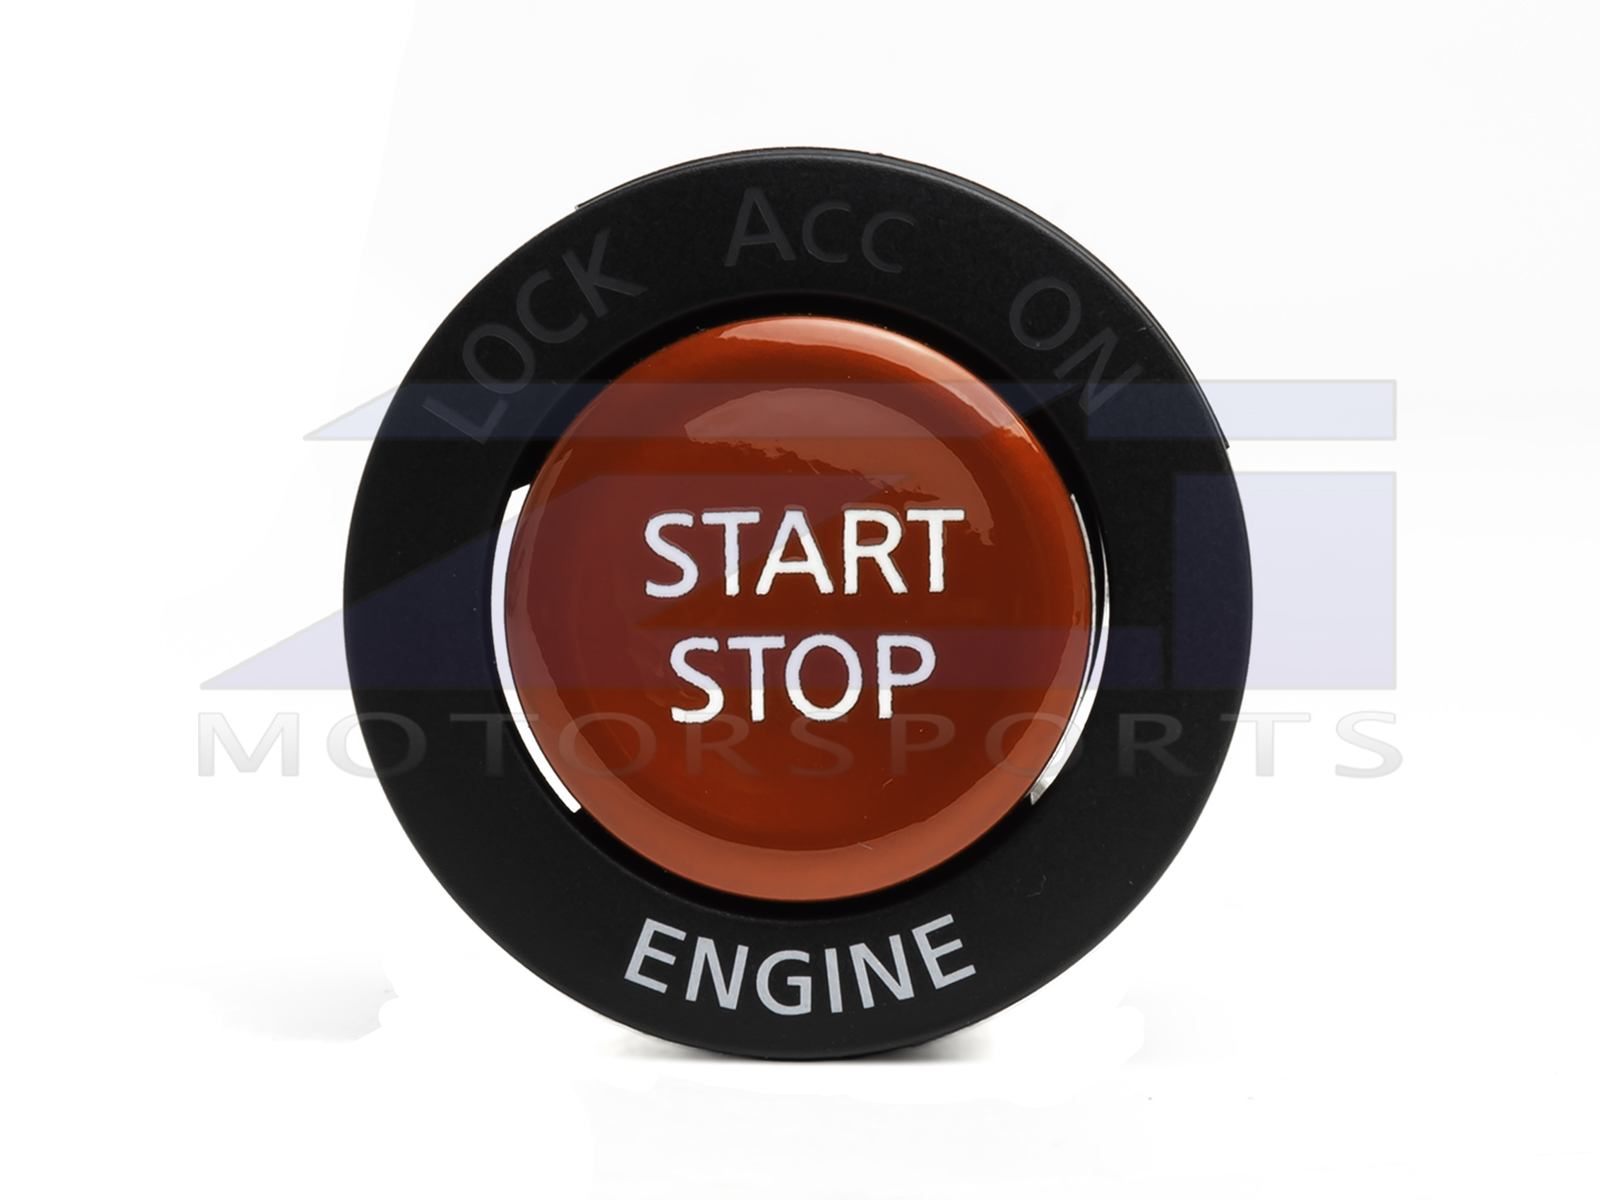 Oem R35 Gt R Red Start Button Z1 Motorsports Infiniti G37 Clock New Nissan For All 09 370z And 08 Models